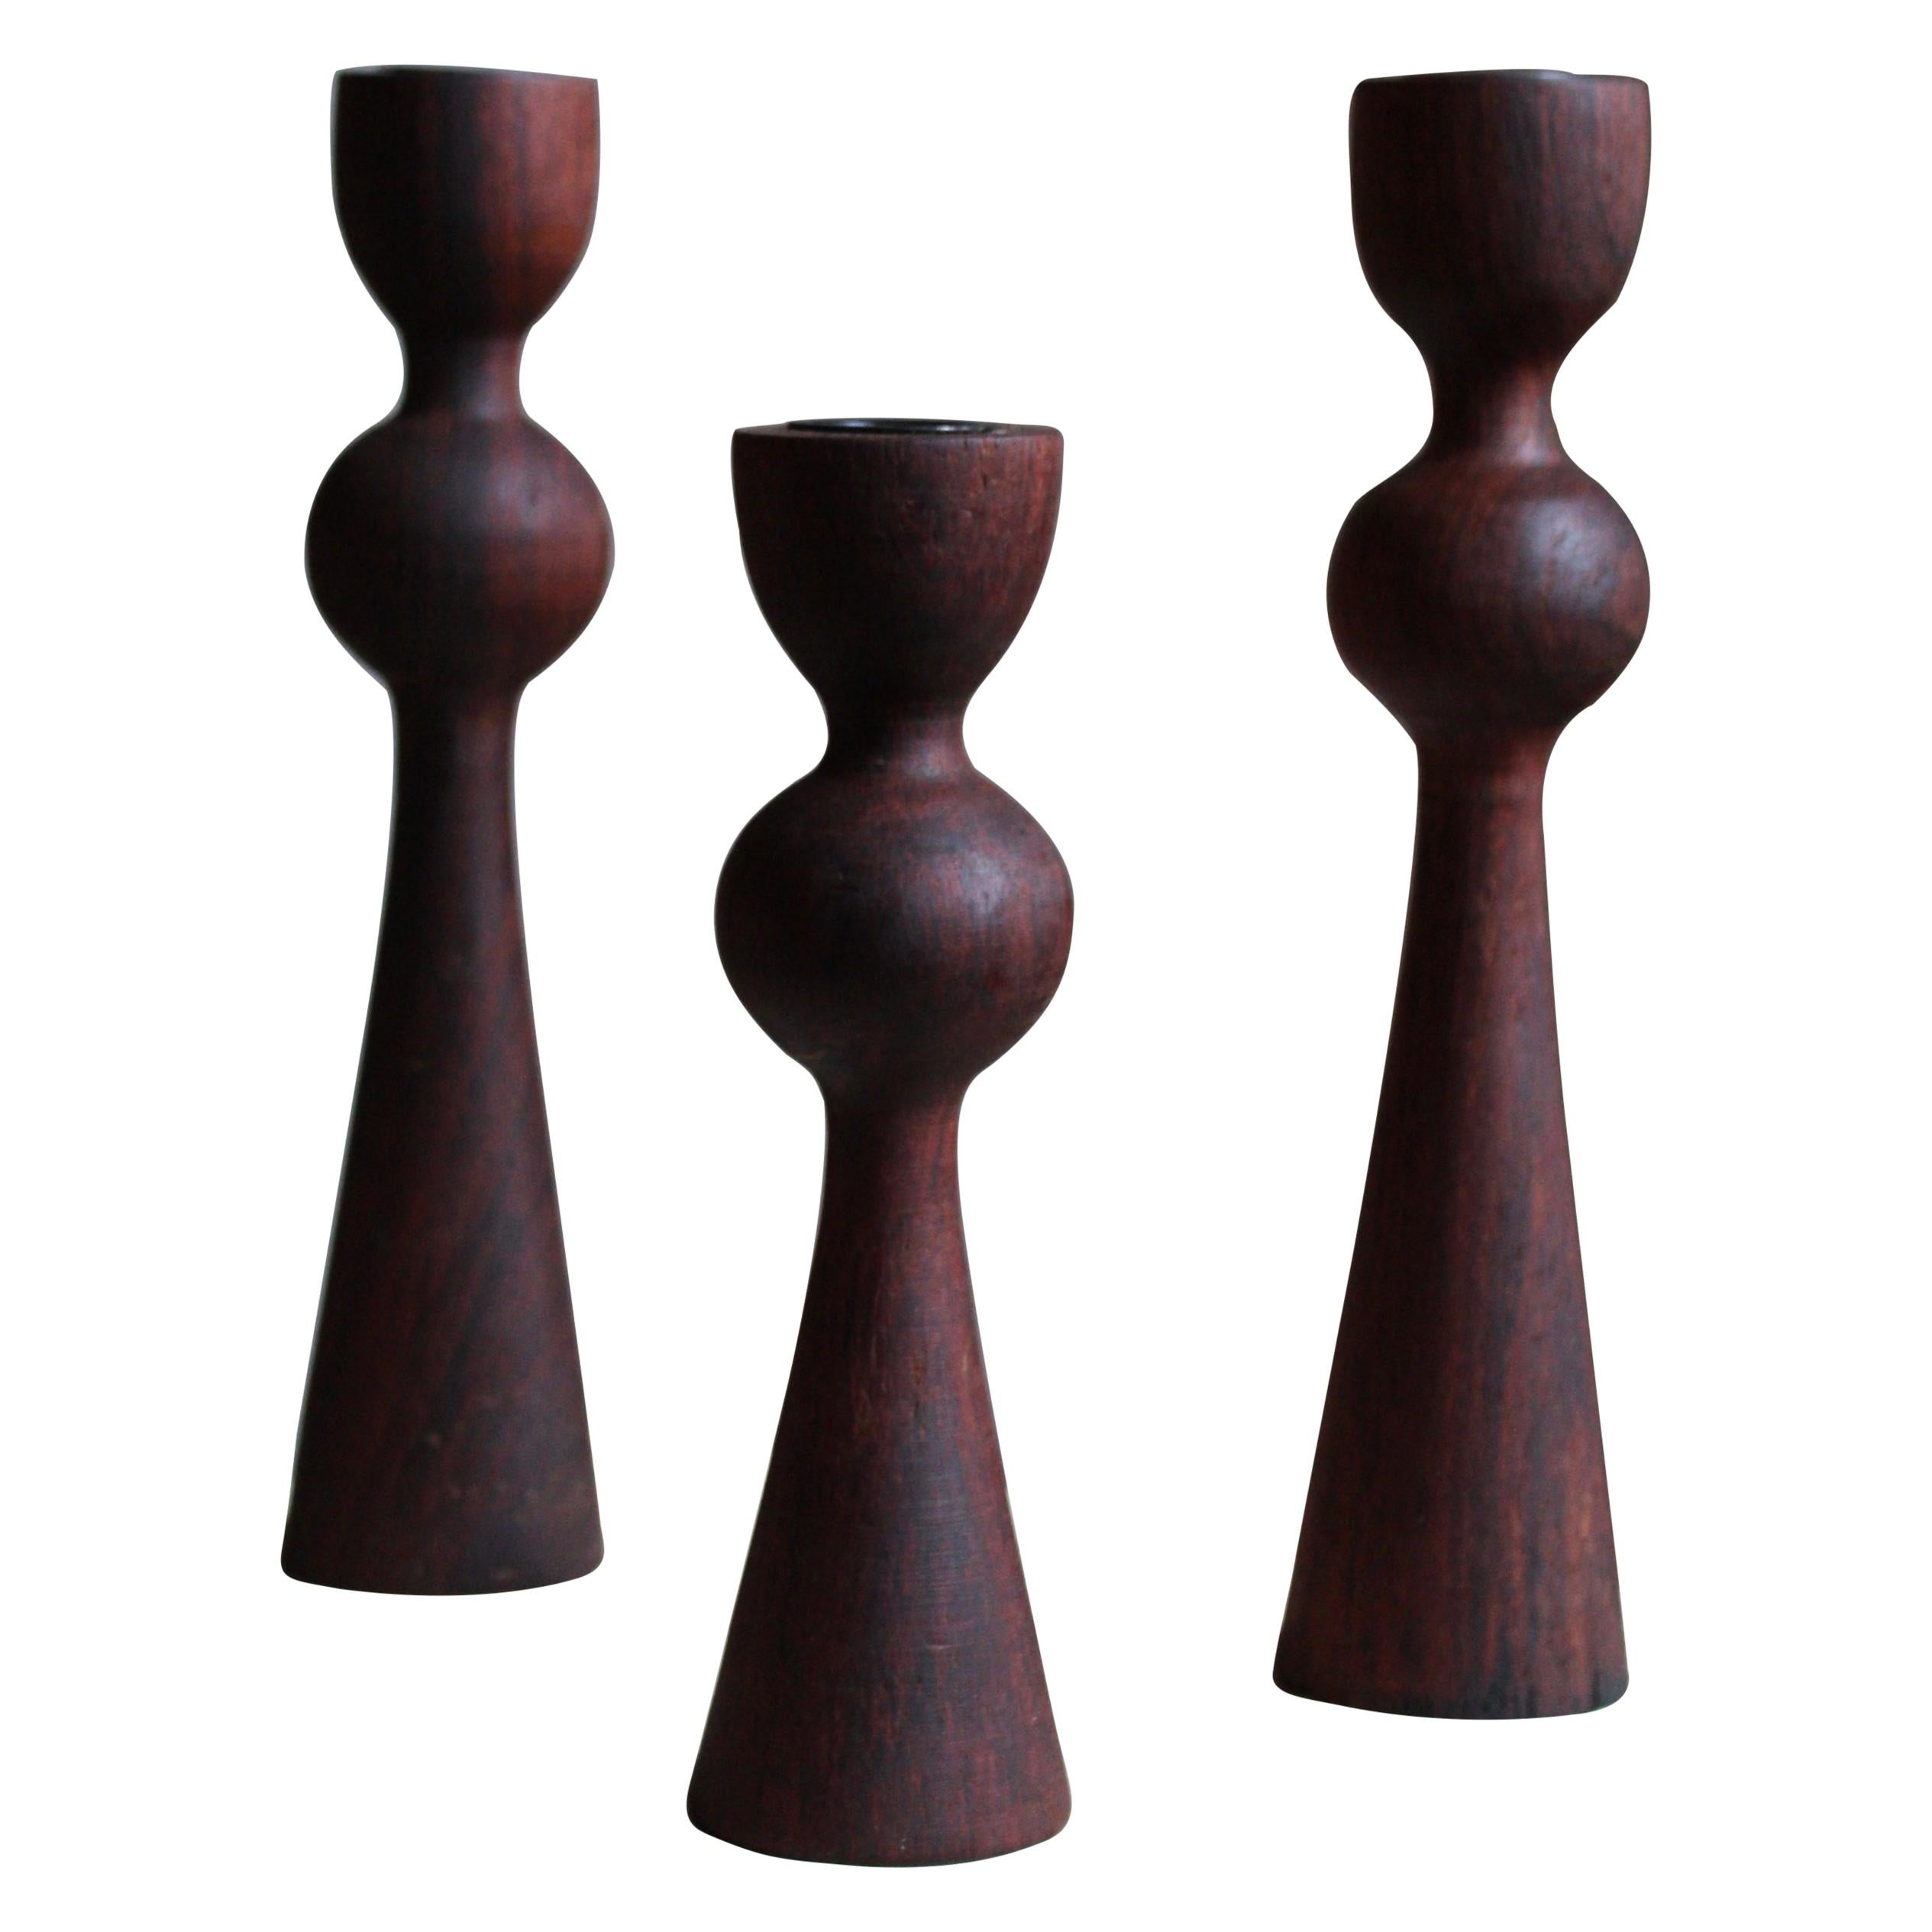 Swedish Craft, Candlesticks, Stained Solid Teak, Lacquered Metal, Sweden, 1970s